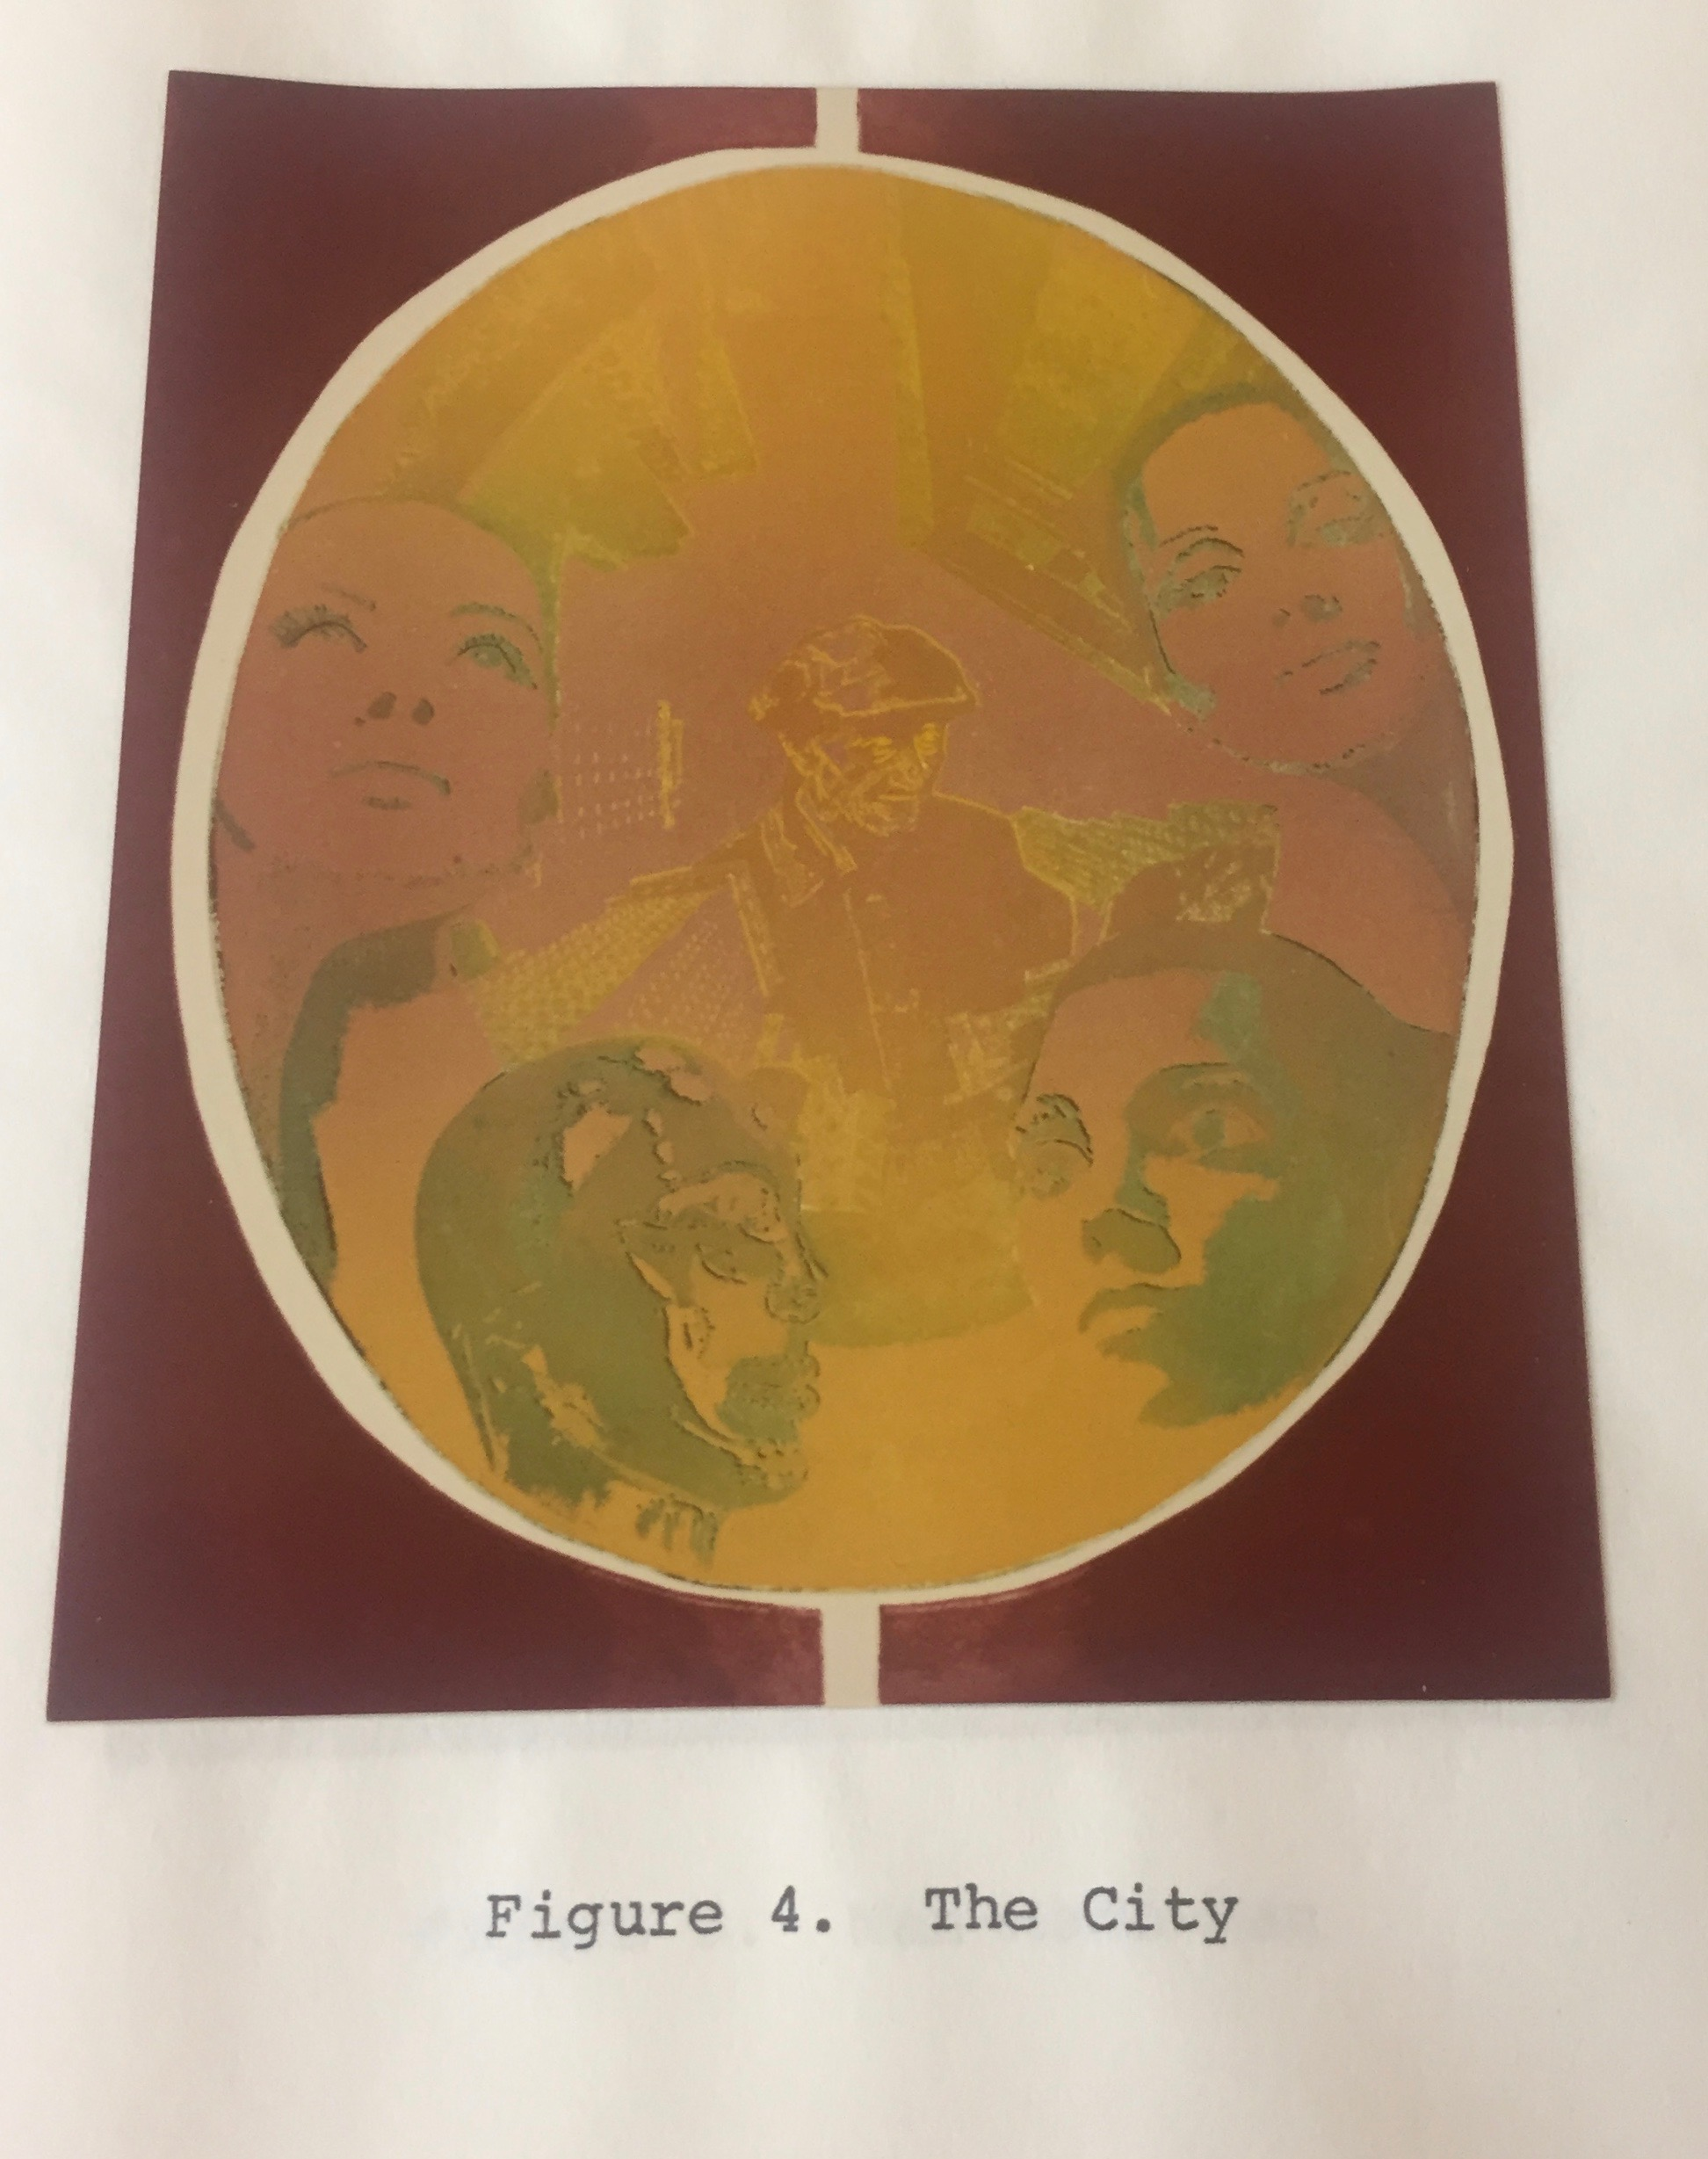 "Valeerat Burapavong. ""The City"" 1975. The faces of magazine models peer through a golden circle surrounded by a red square shape. Below the image are the words ""Figure 4. The City."" Courtesy of Illinois Institute of Technology, Paul Galvin Library, Special Collections."